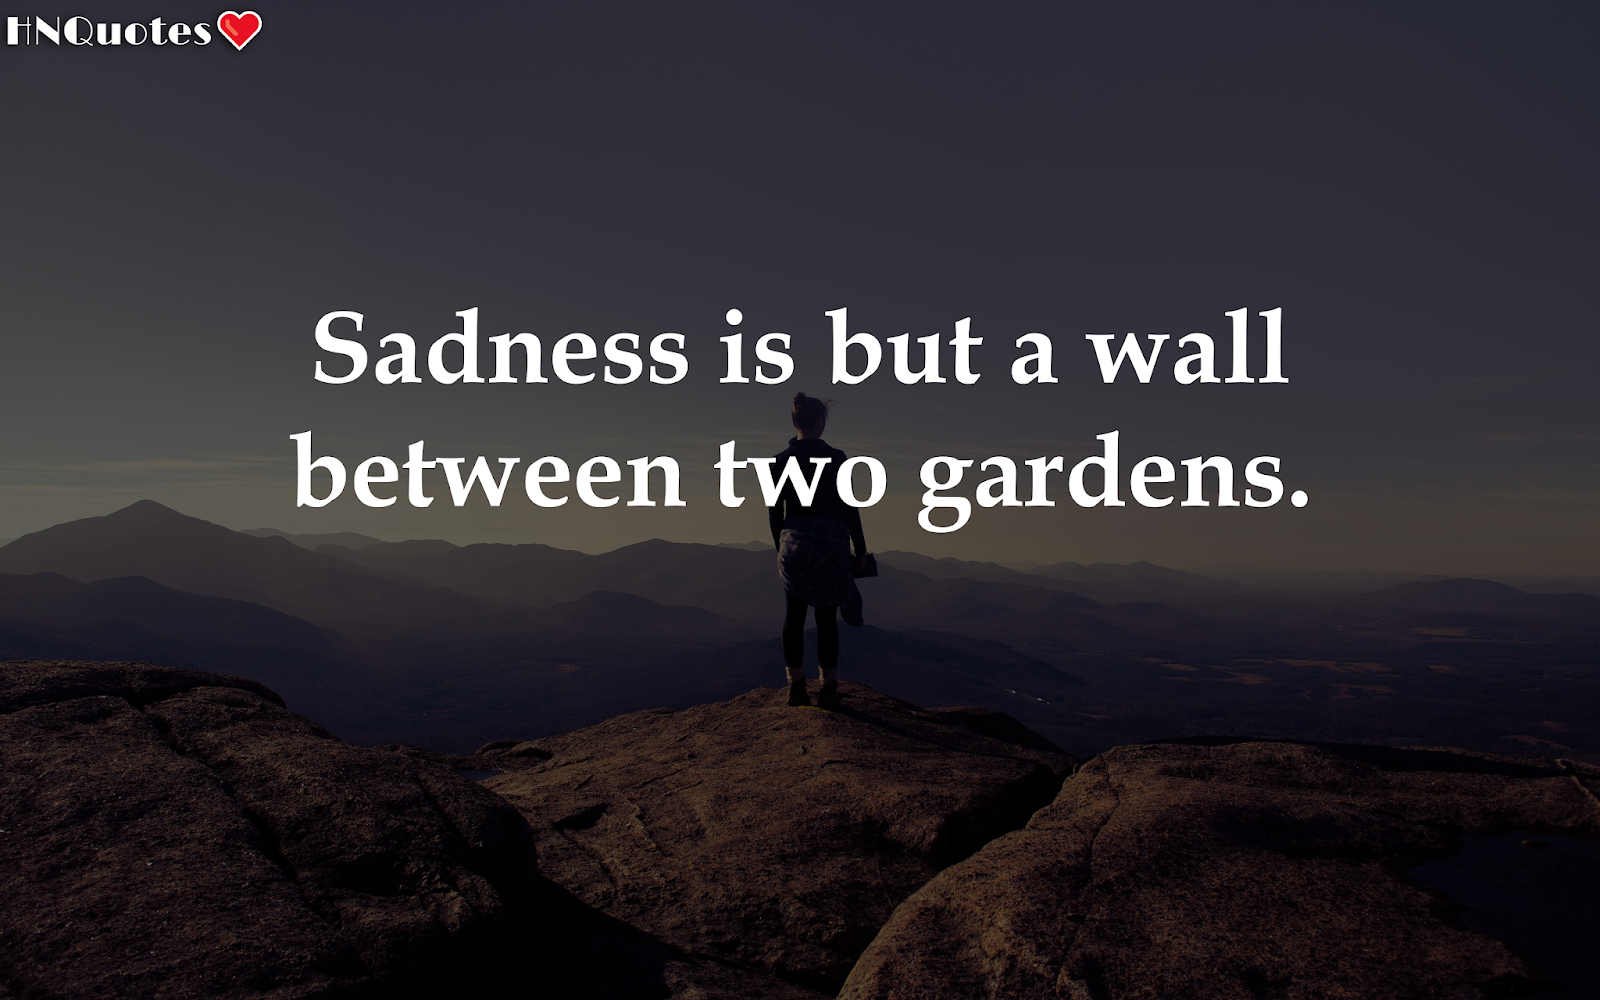 Sad Images | Sad Quotes | Sadness | HNQuotes